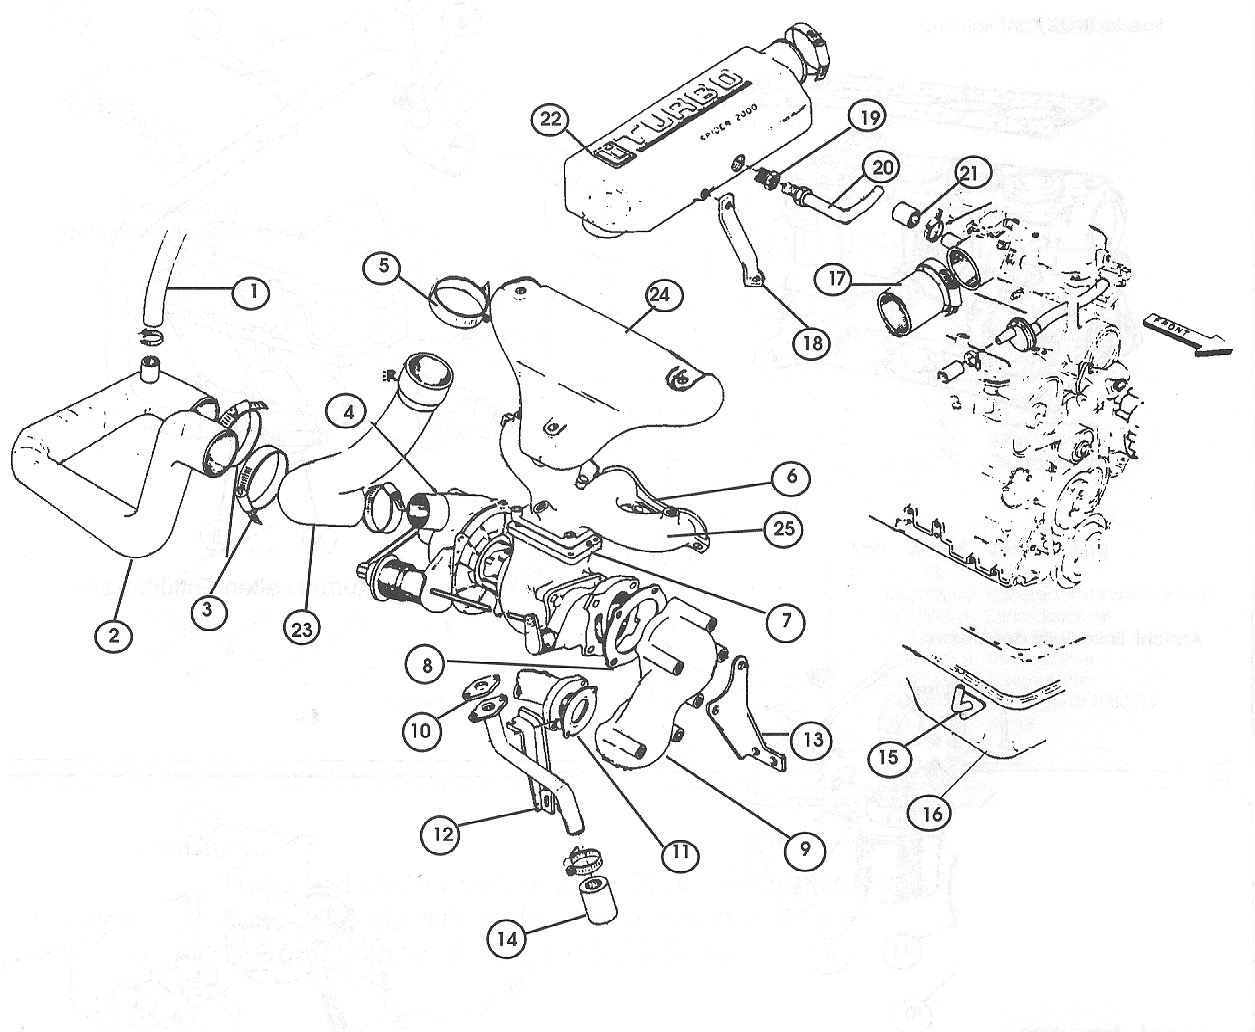 Turbocharger System - Optional 1981-82 Cont.